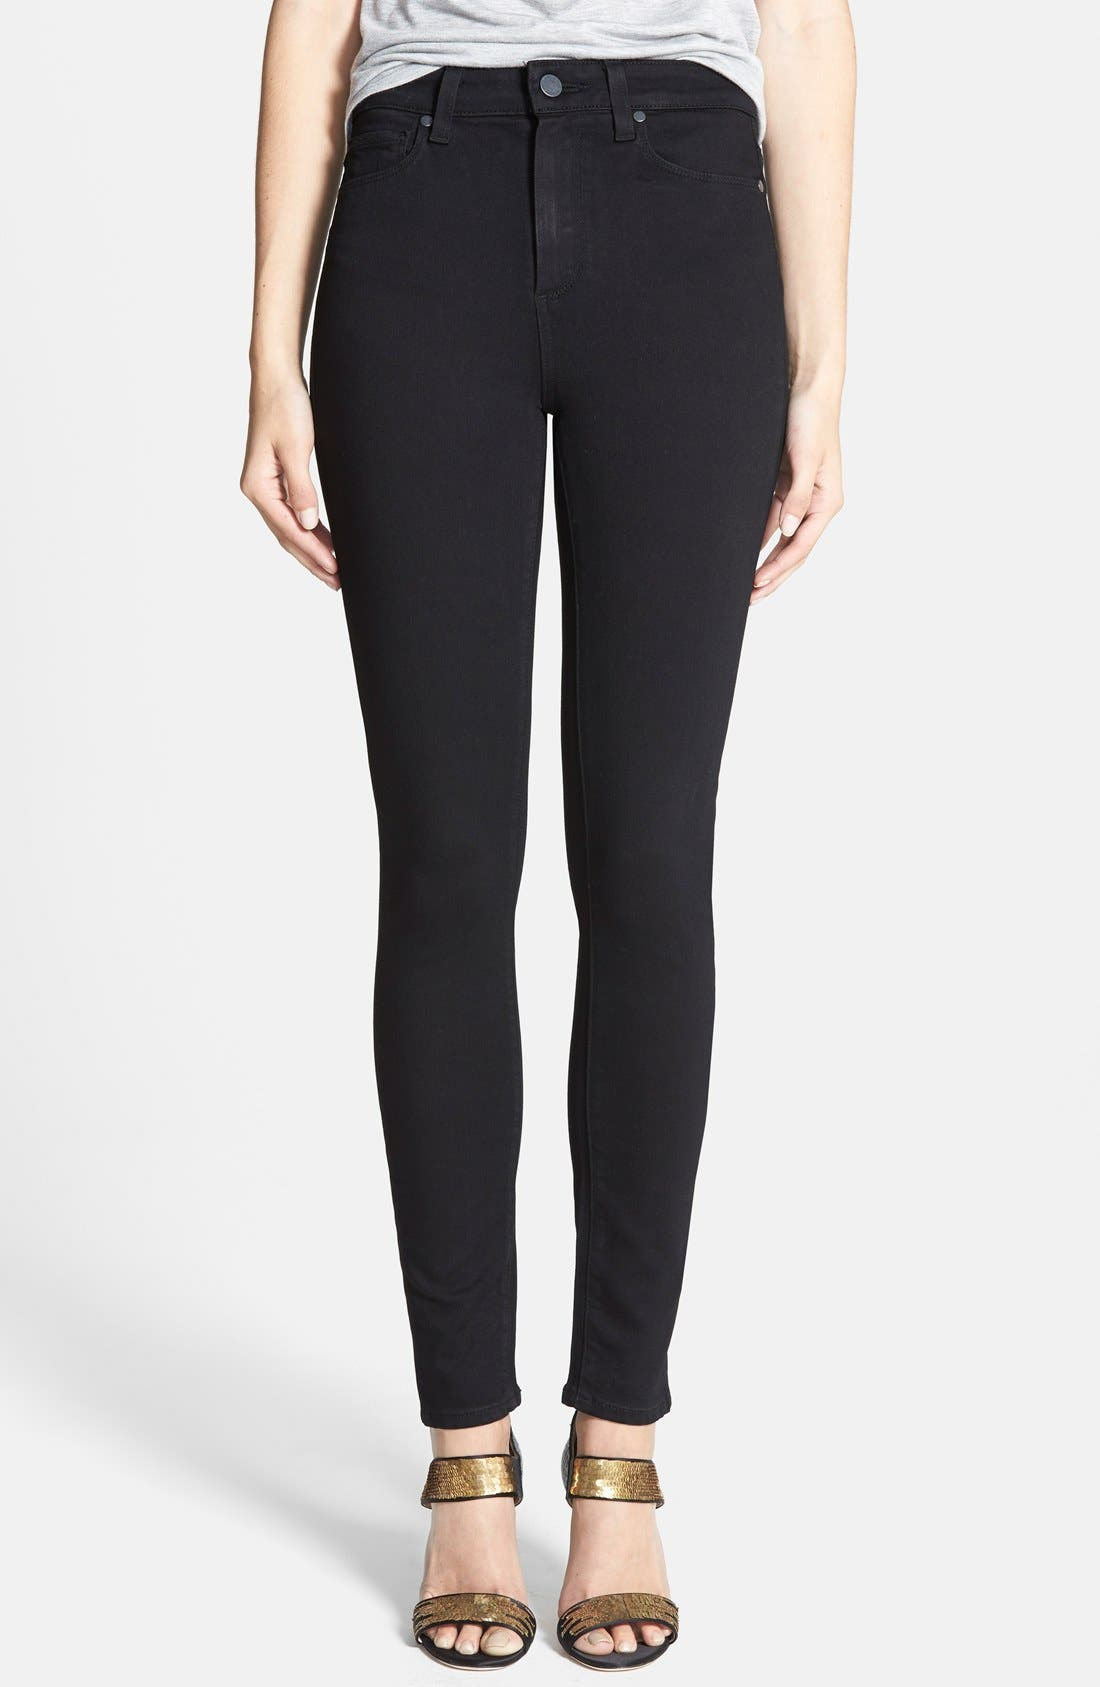 Alternate Image 1 Selected - PAIGE Margot High Waist Ultra Skinny Jeans (Black Shadow)